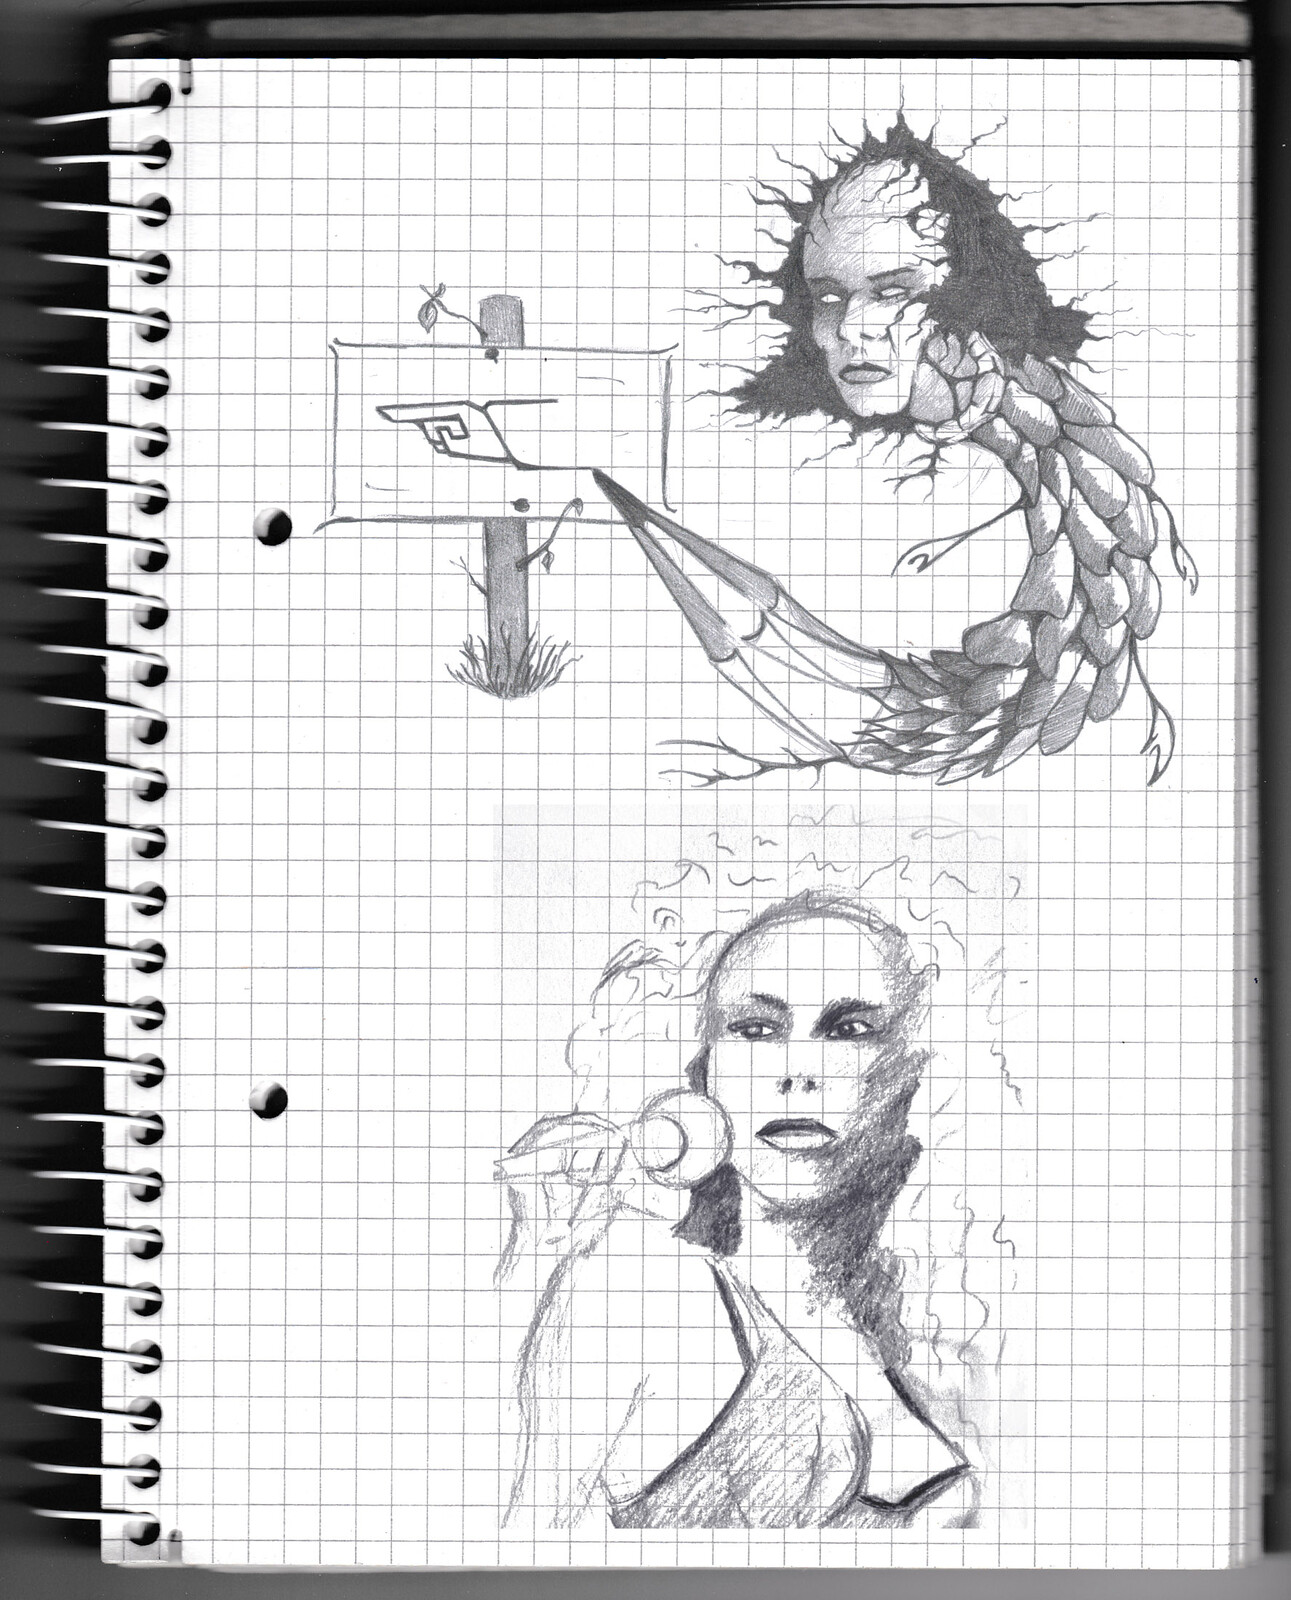 character, sketch, pencil, monster, creature, psychodelic, lady, monster,